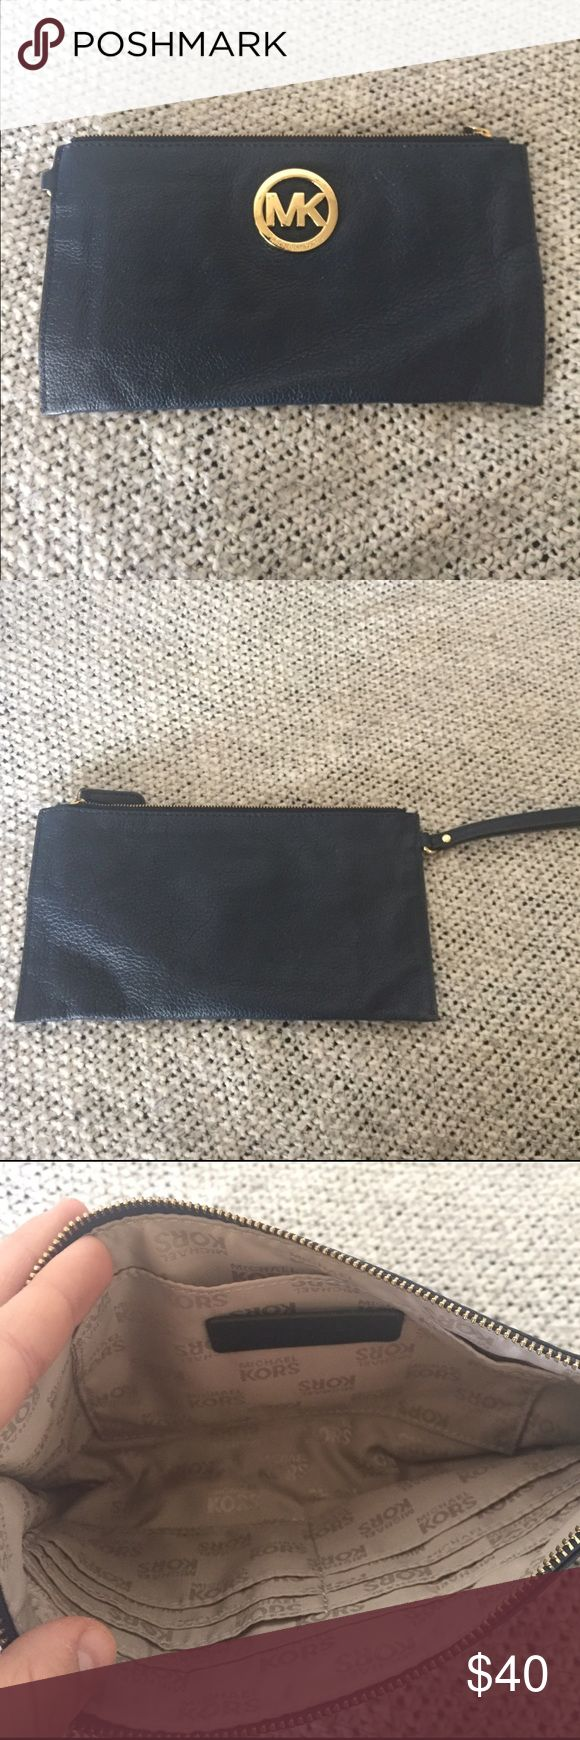 Authentic Michael Kors navy clutch Small amounts of wrinkles from being stored, would go back to normal when used. The MK has minor scratches Michael Kors Bags Clutches & Wristlets